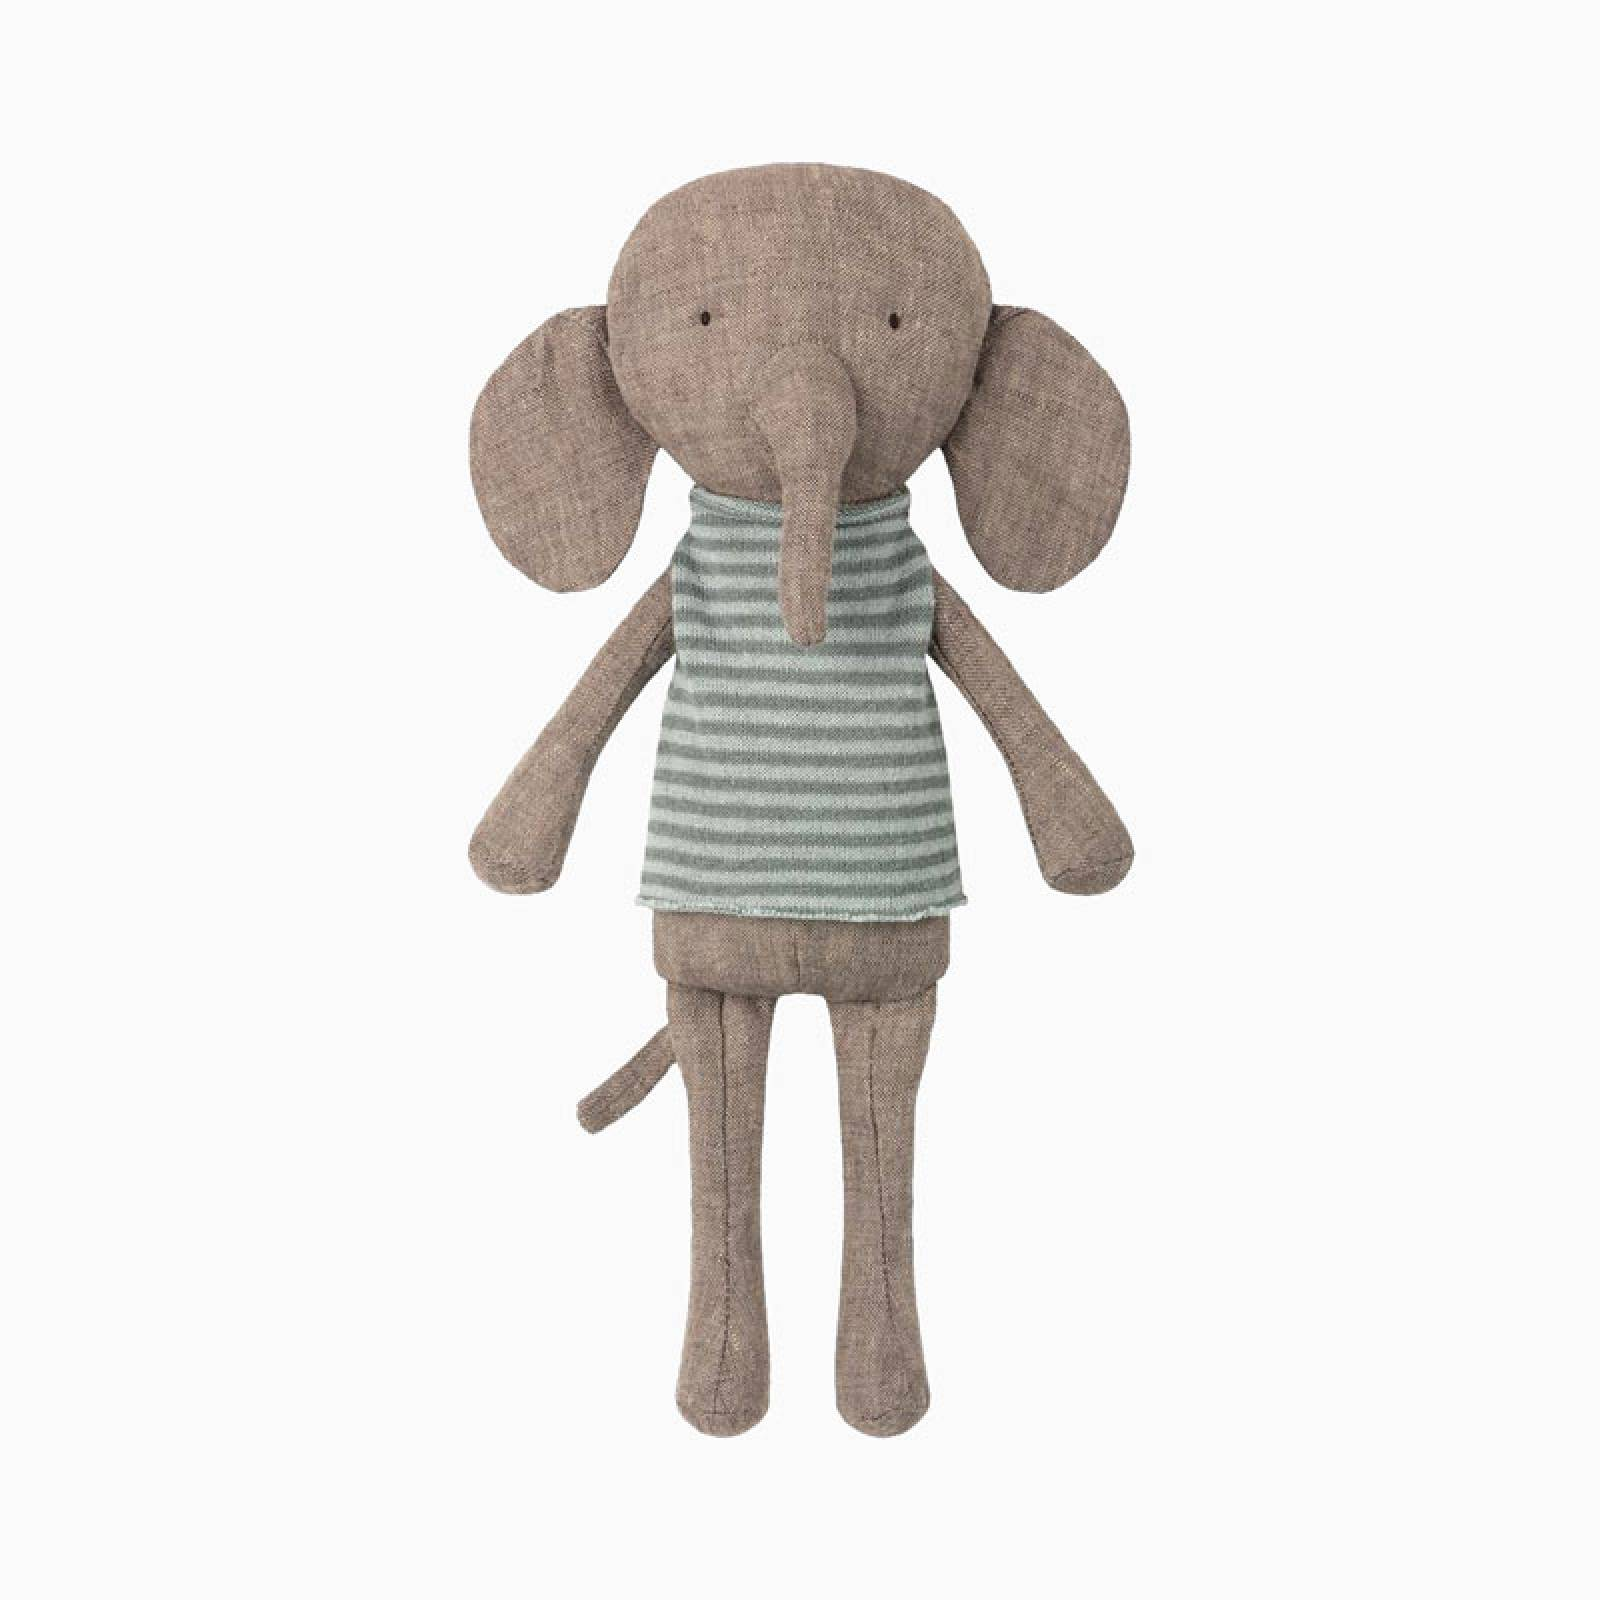 Jungle Friends - Elephant - Soft Toy By Maileg 0+ thumbnails